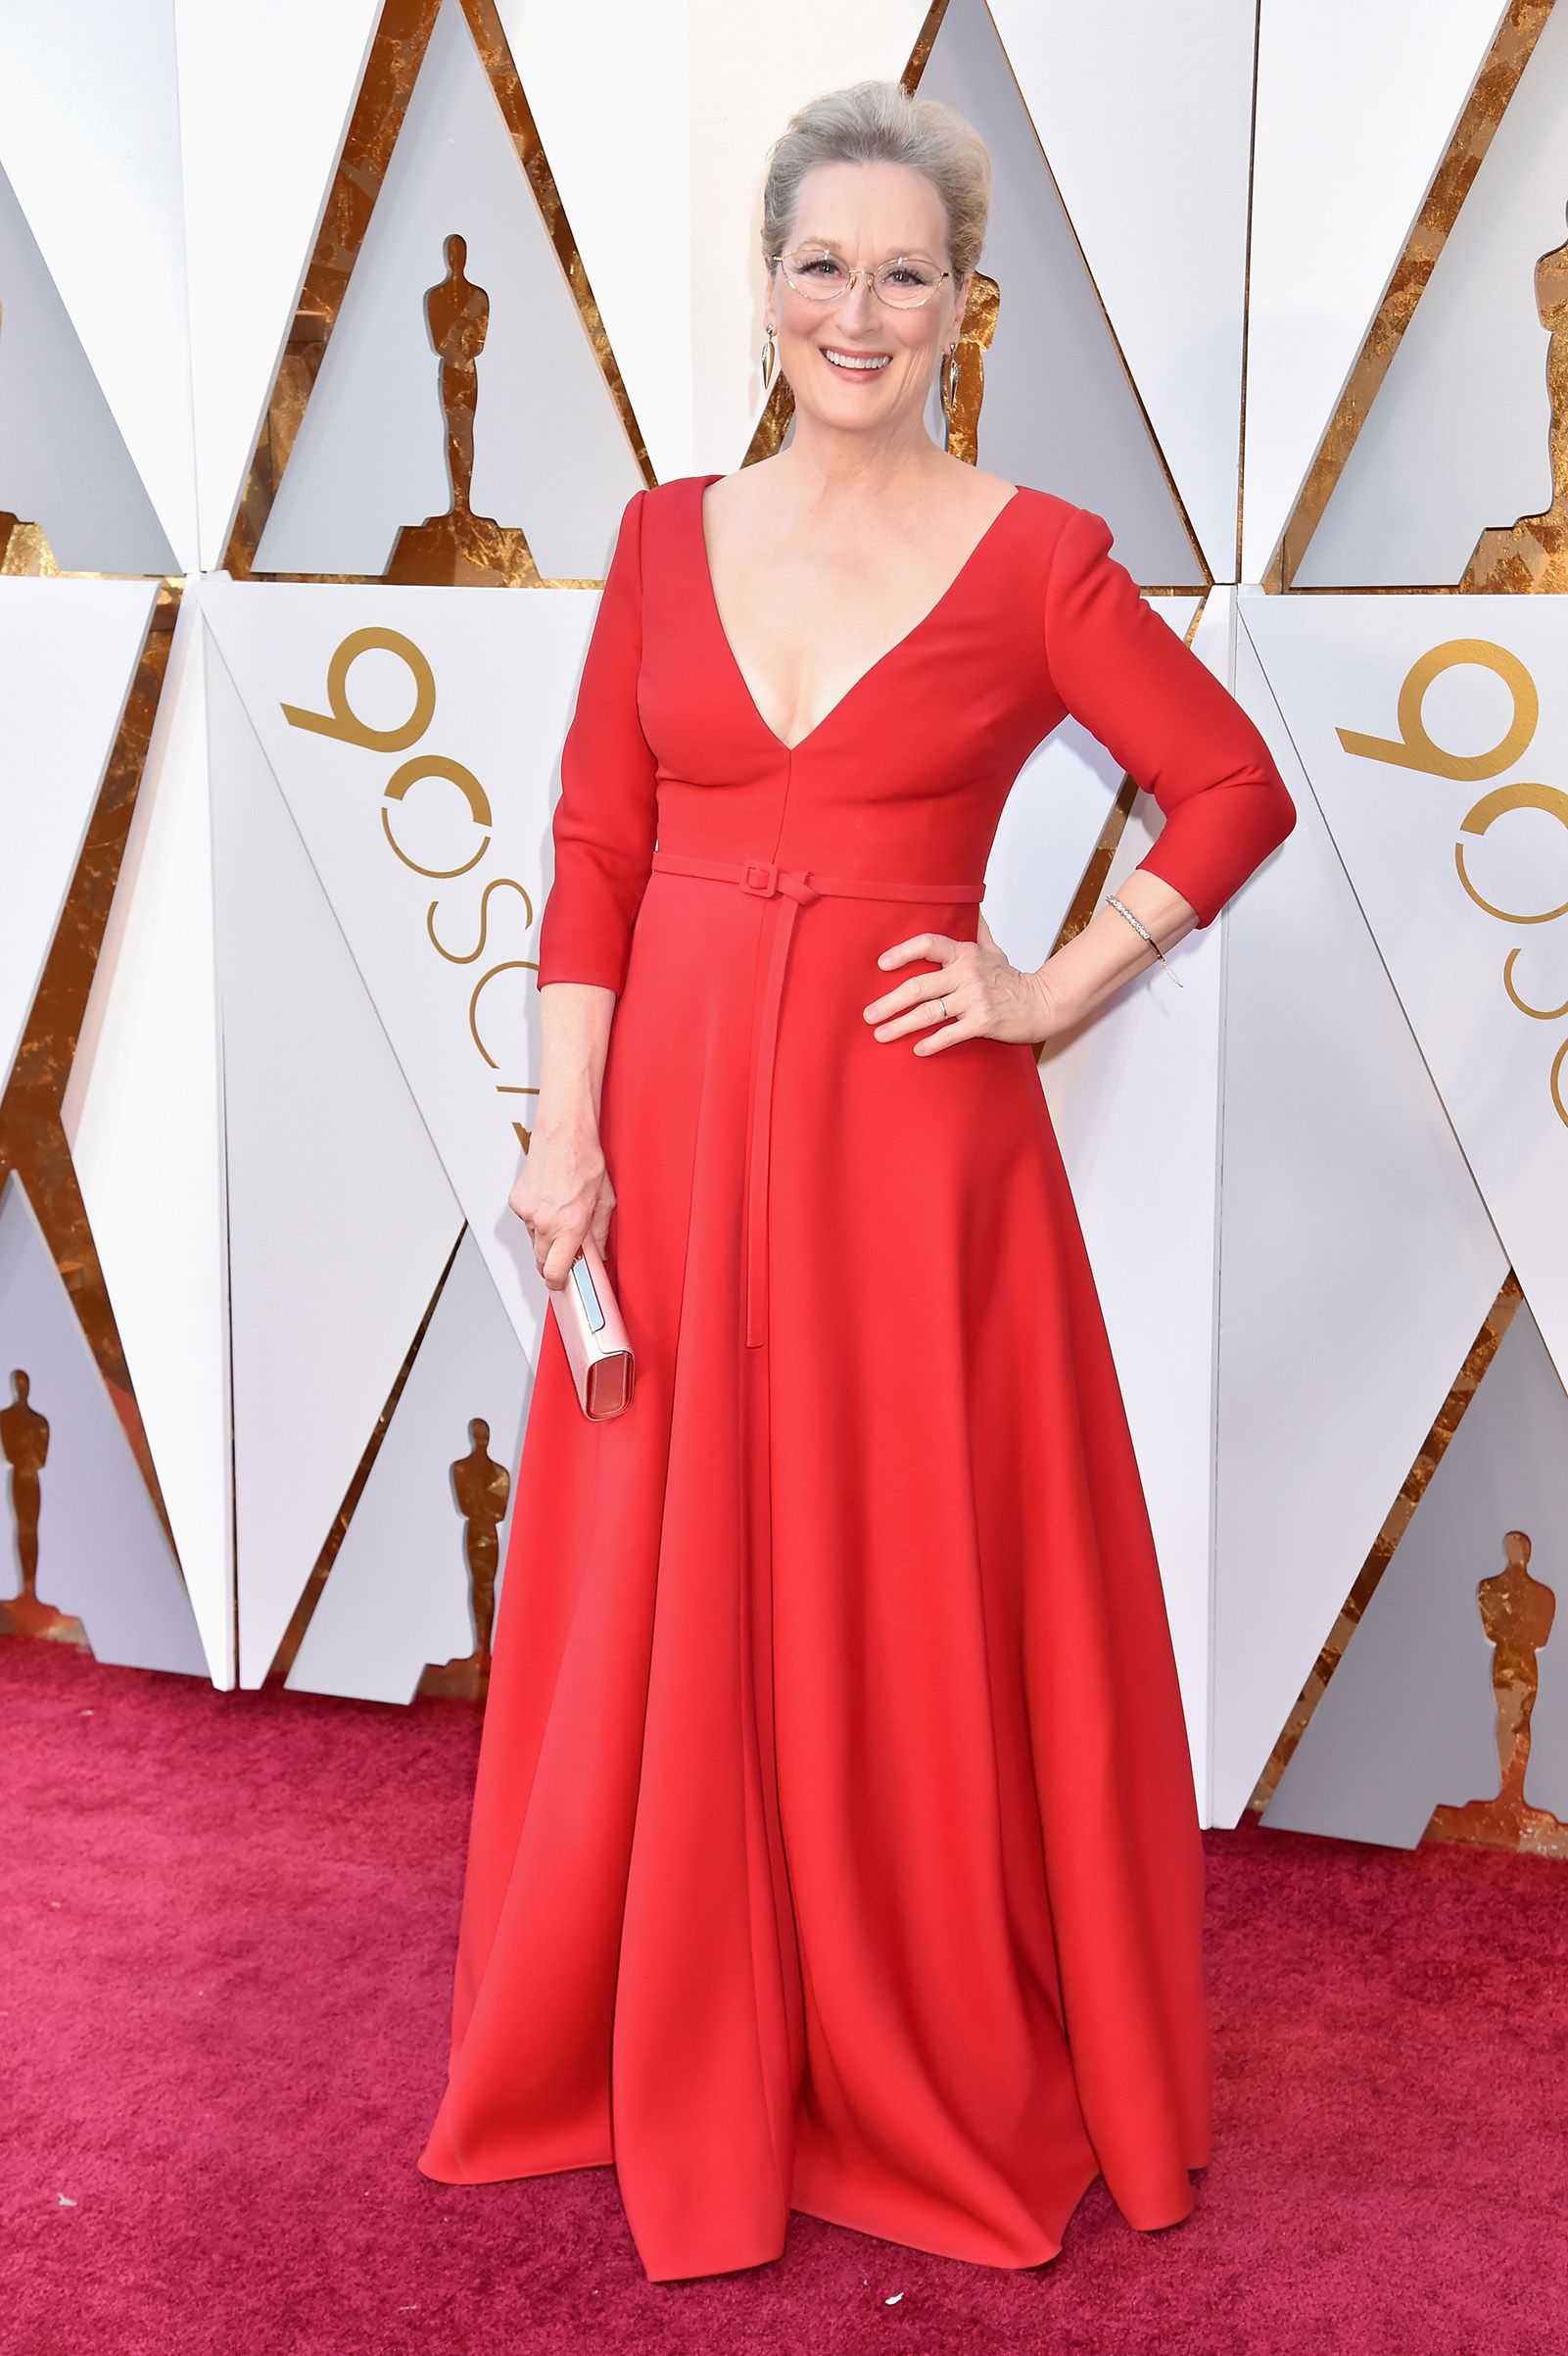 Meryl Streep attends the 90th Annual Academy Awards at Hollywood & Highland Center on March 4.